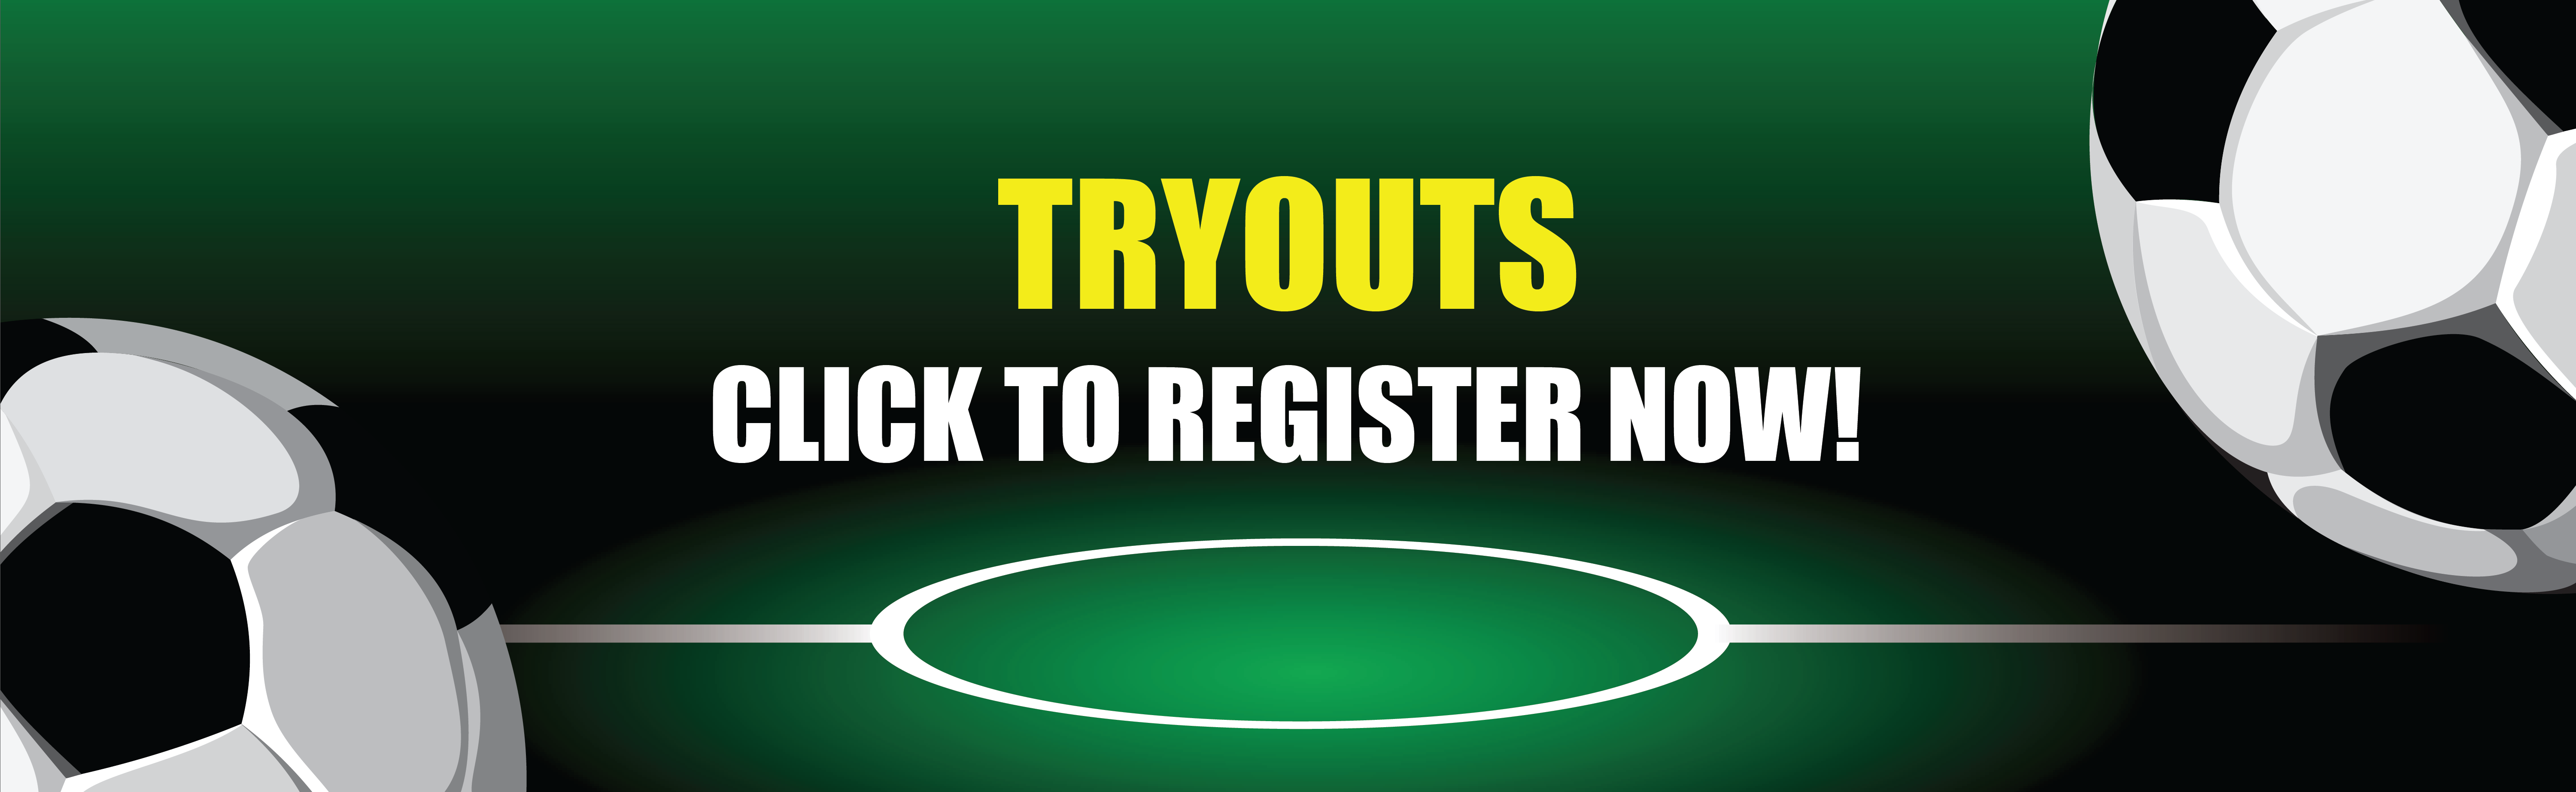 MidState Tryouts